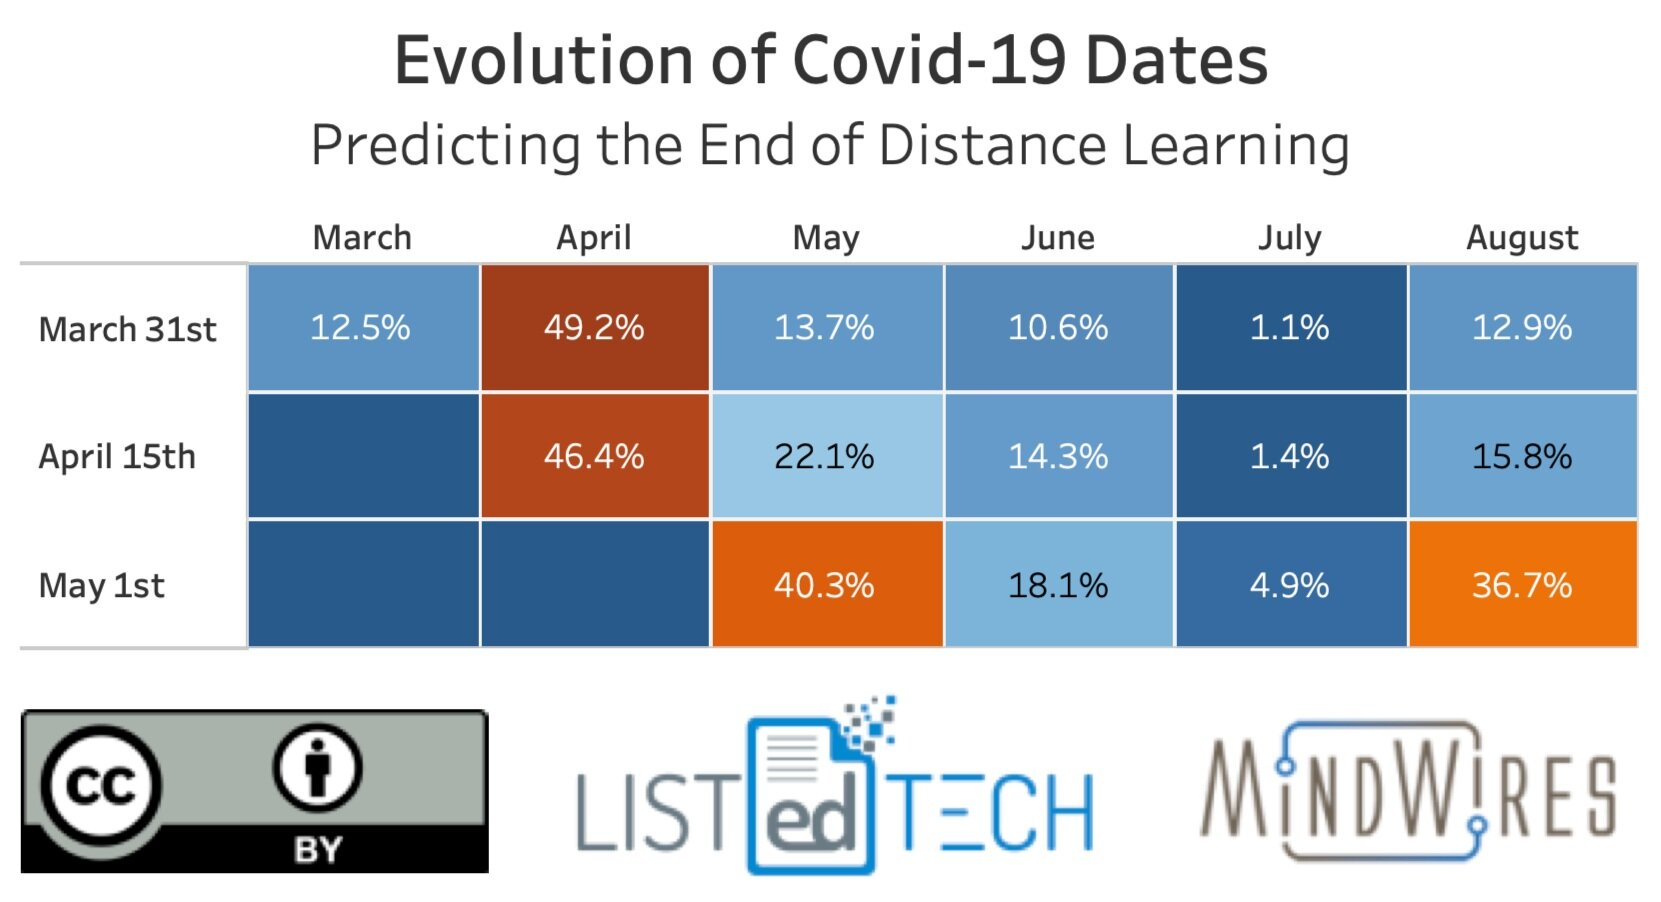 Evolution of Covid-19 Dates - LisTedTECH